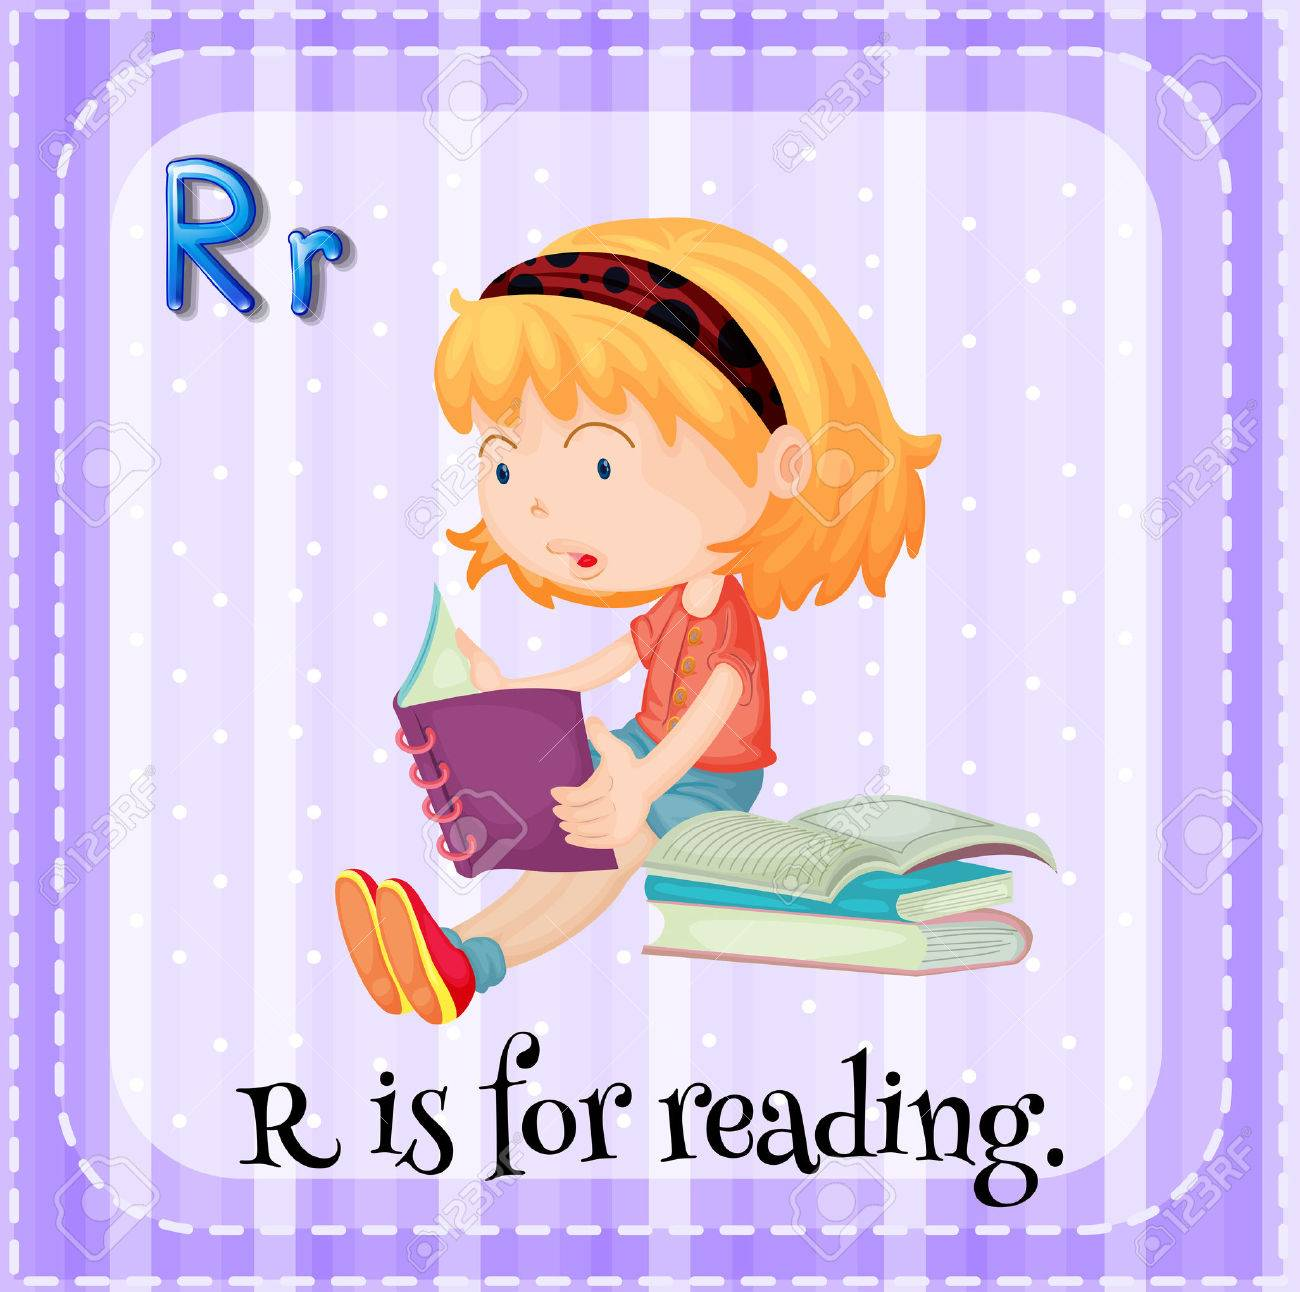 Worksheets Flash Card For Reading flashcard letter r is for reading royalty free cliparts vectors stock vector 40330883